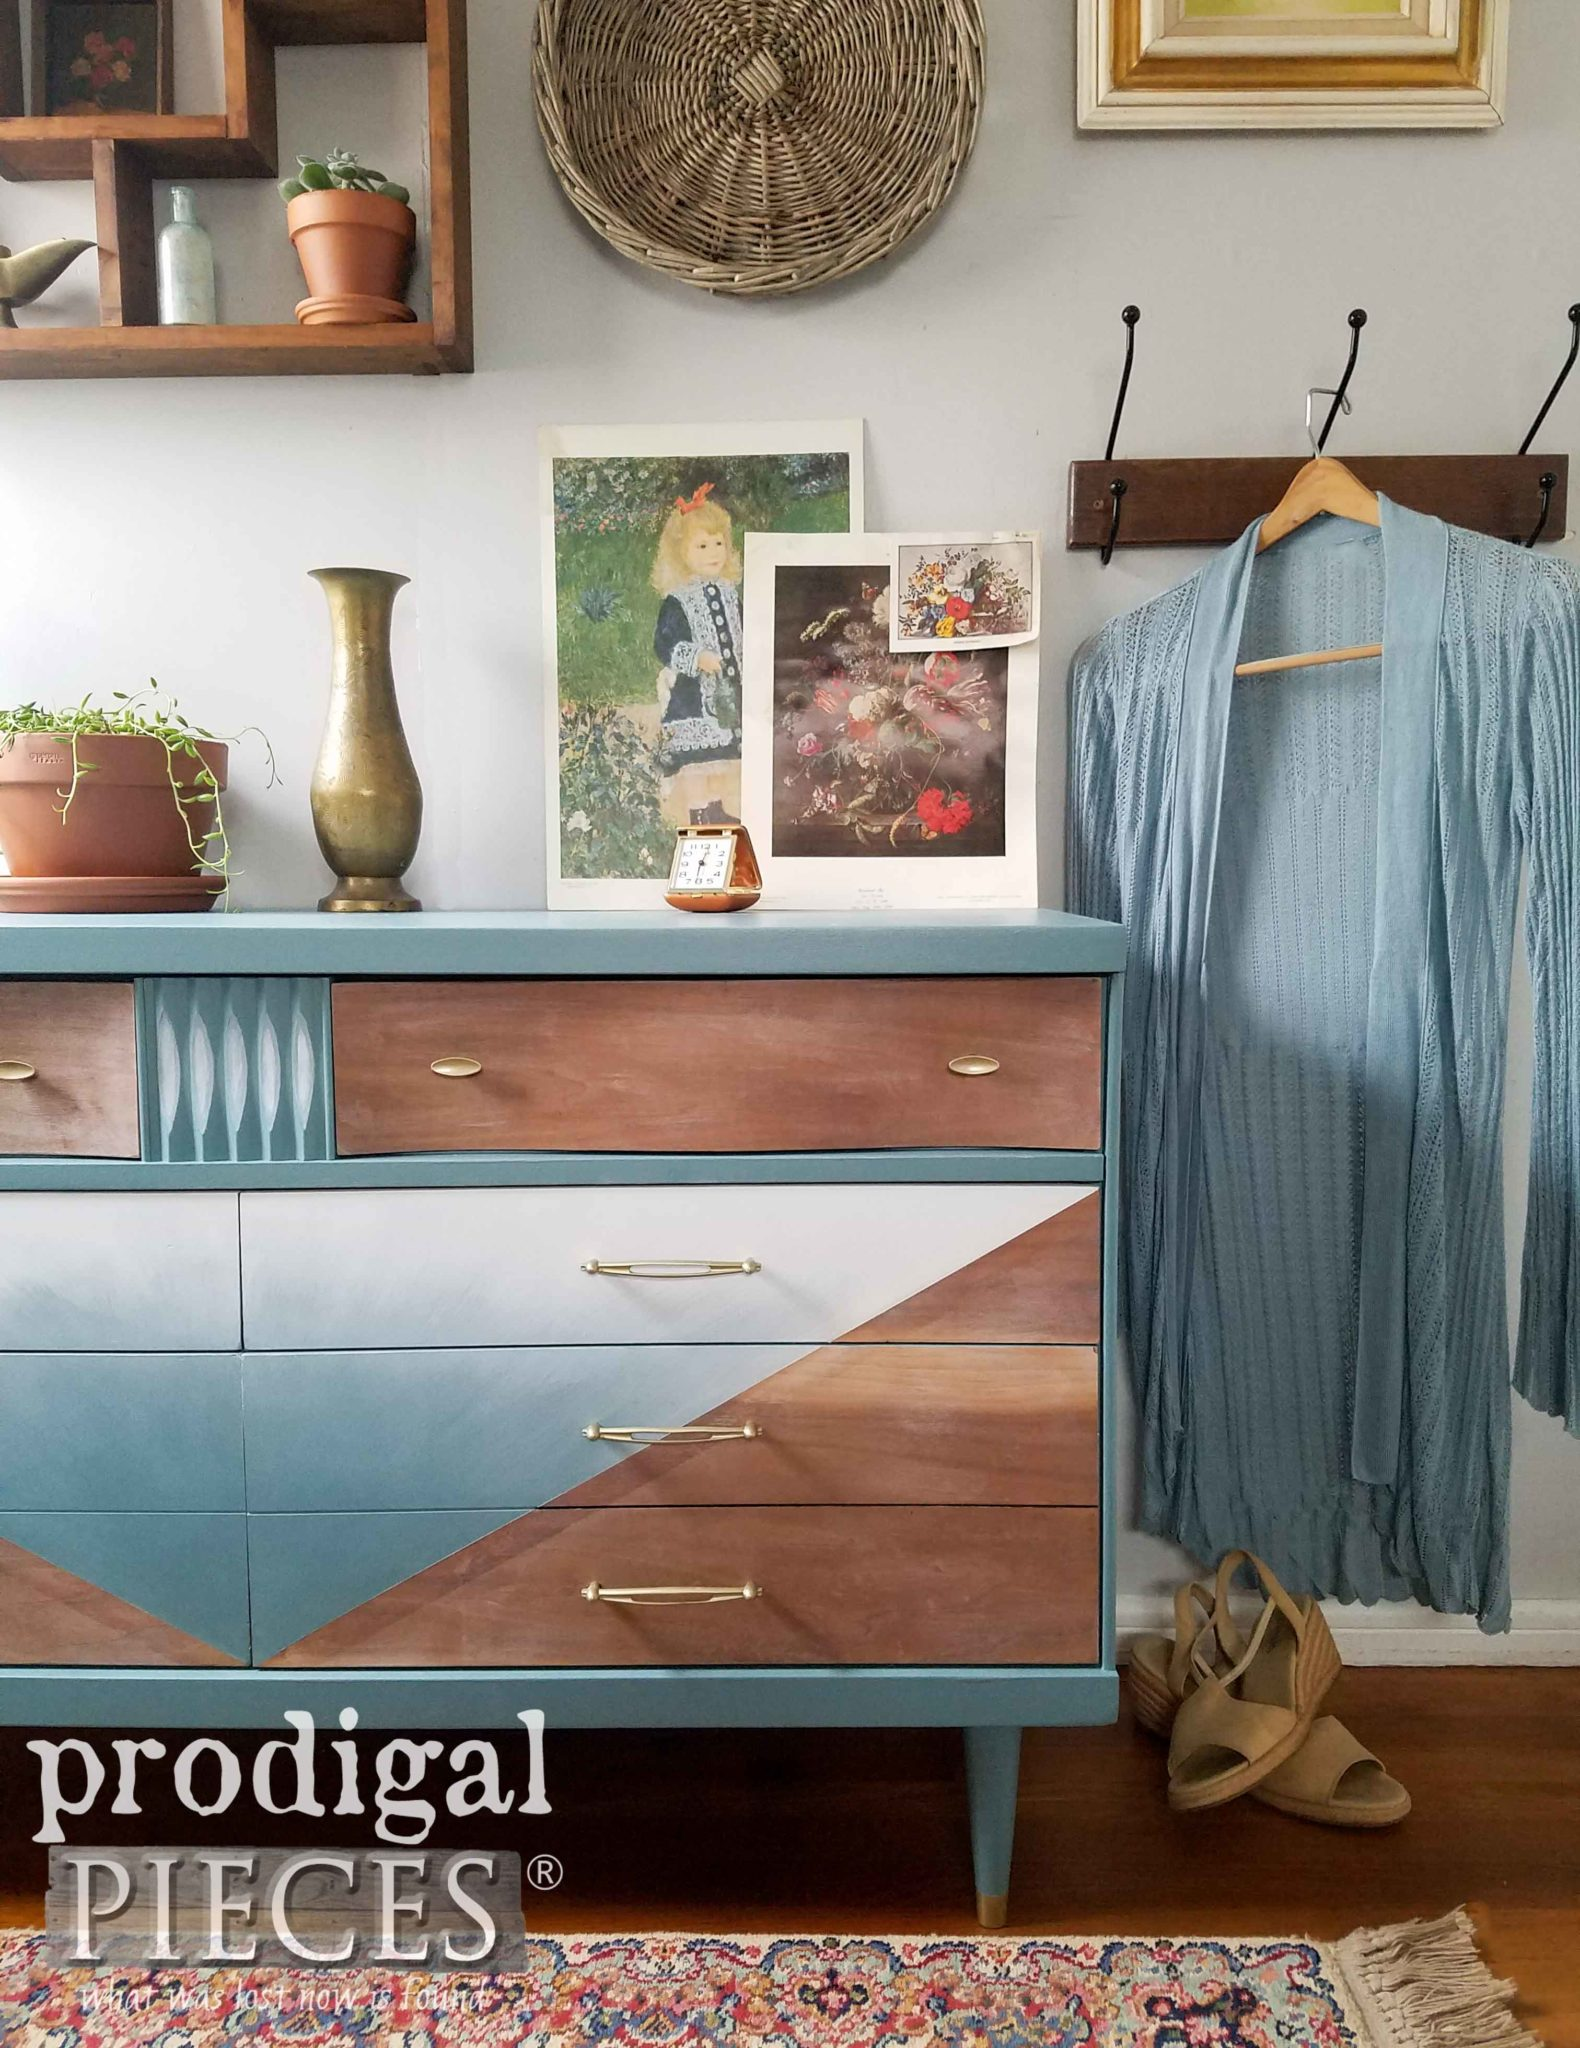 Boho Chic Style Mid Century Modern Bassett Dresser for Bedroom Decor by Larissa of Prodigal Pieces | prodigalpieces.com